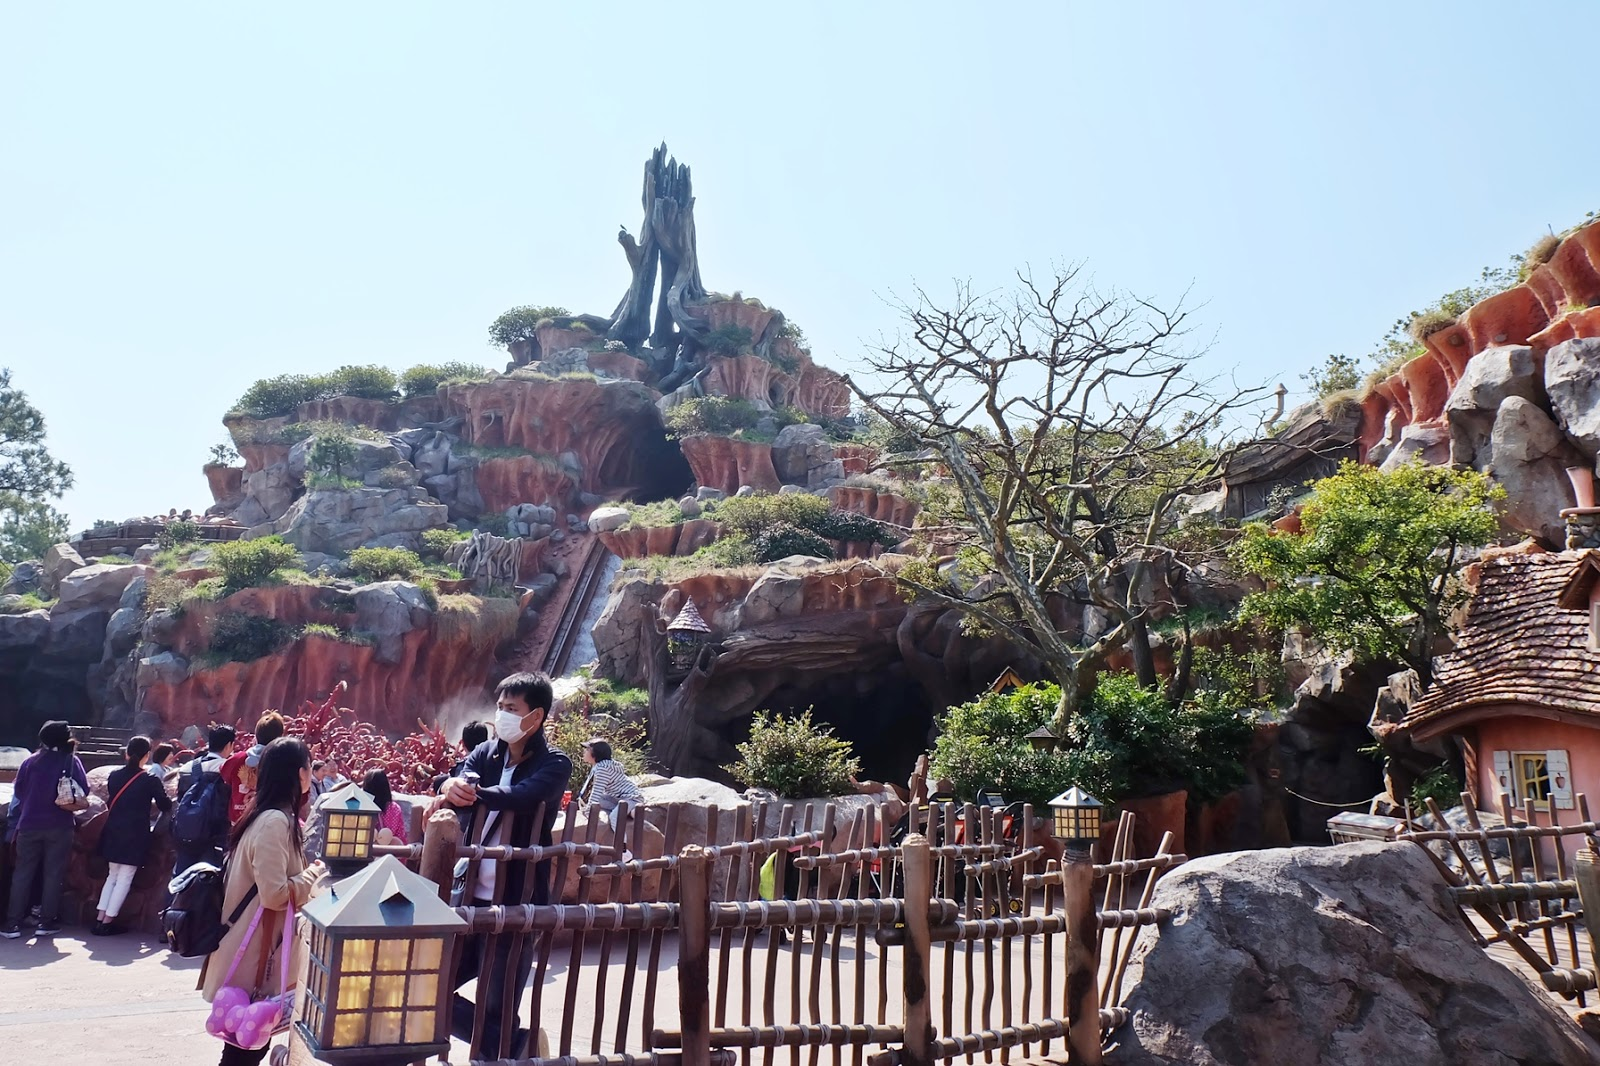 Disneysea Disneyland Single Rider Attractions | www.bigdreamerblog.com